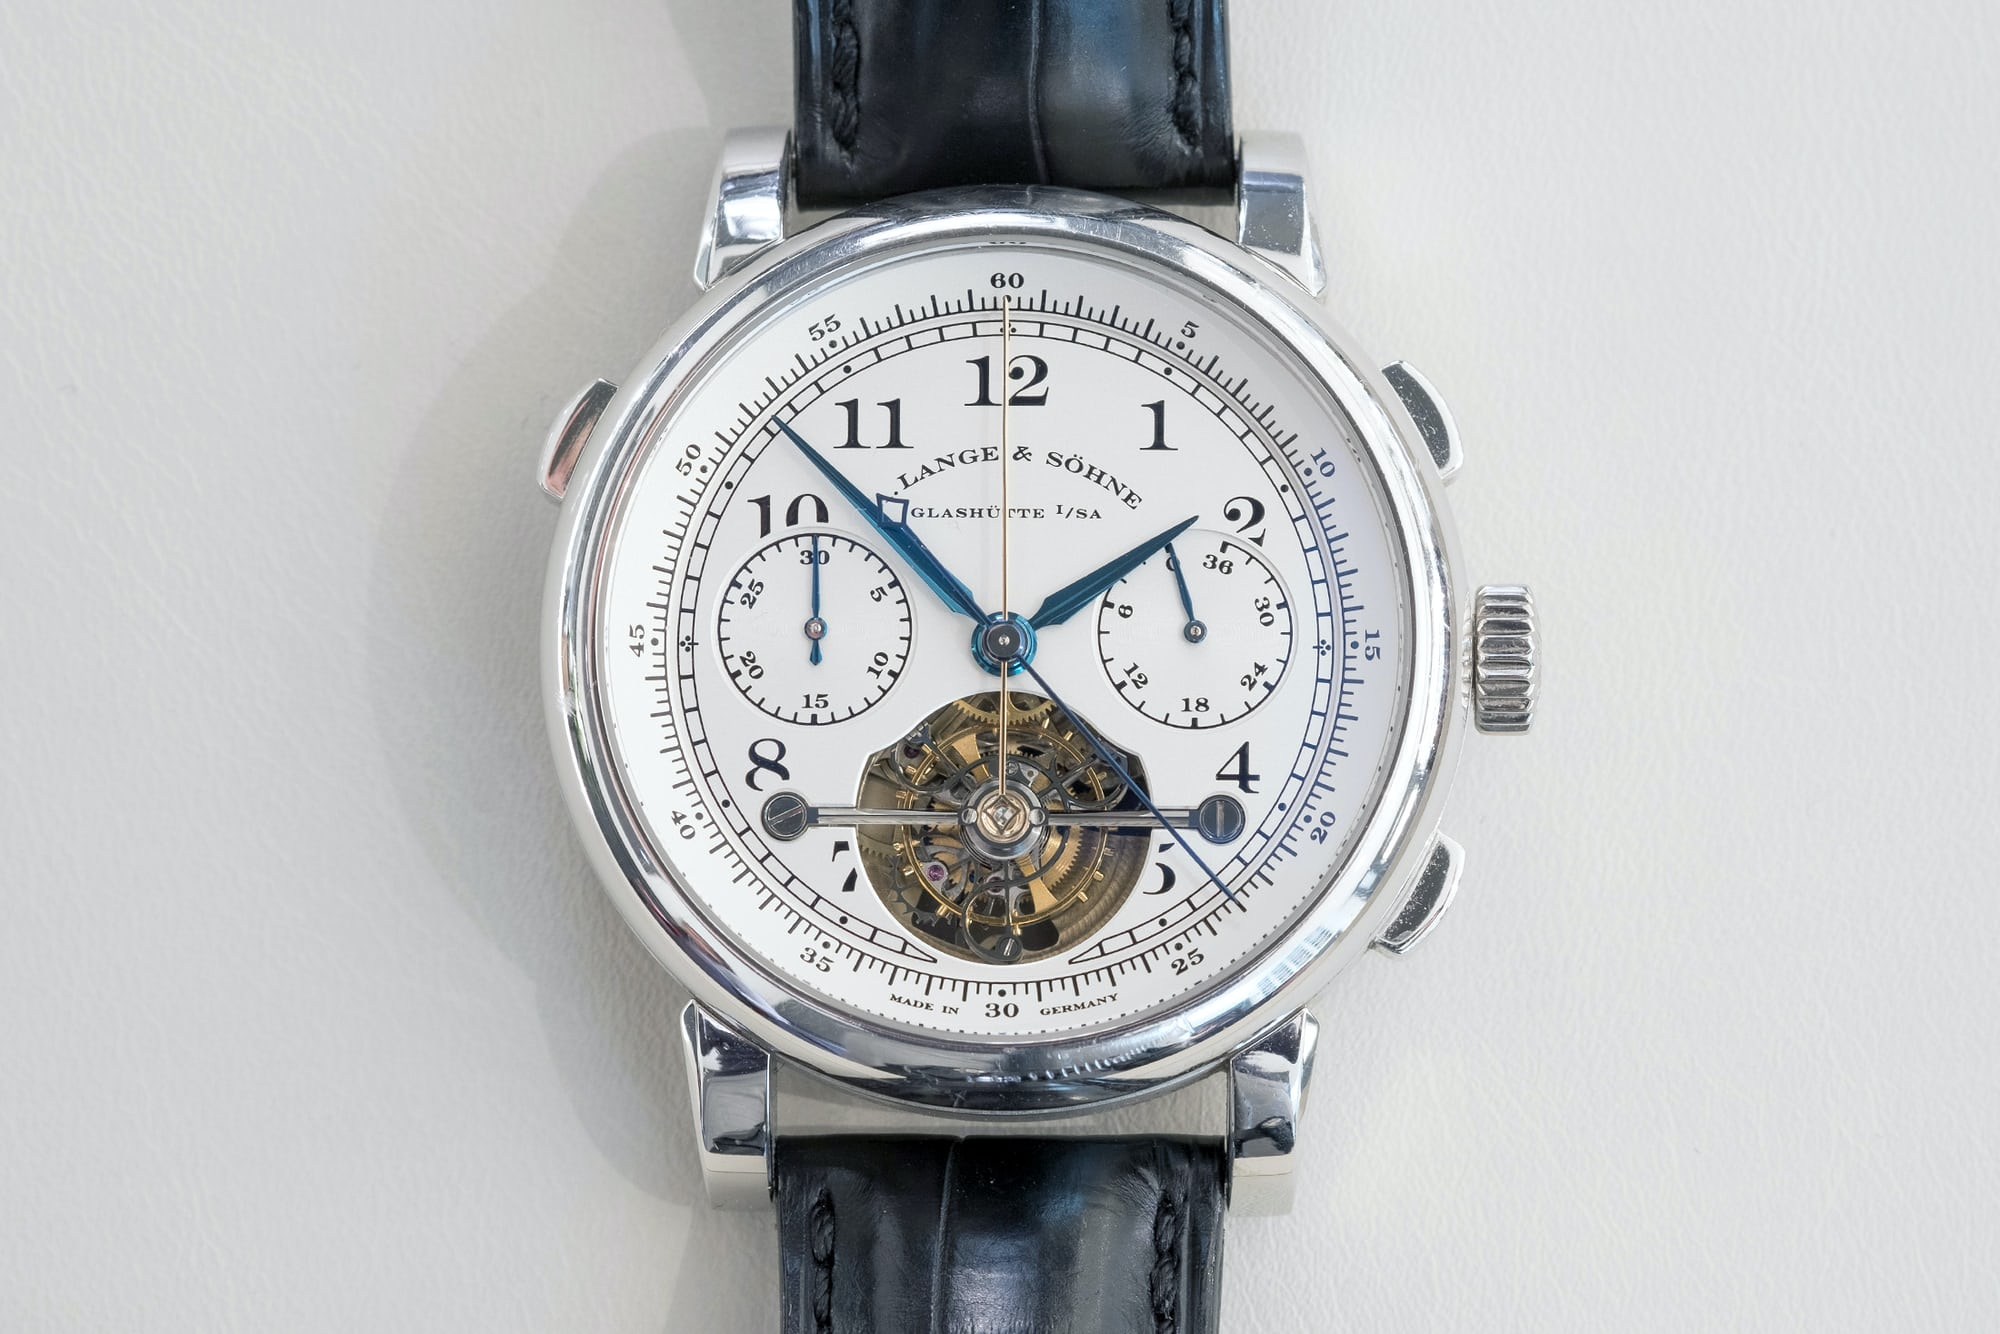 Just Because: All Five A. Lange & Söhne 'Pour le Mérite' Watches In The Same Place, At The Same Time Just Because: All Five A. Lange & Söhne 'Pour le Mérite' Watches In The Same Place, At The Same Time plm 12